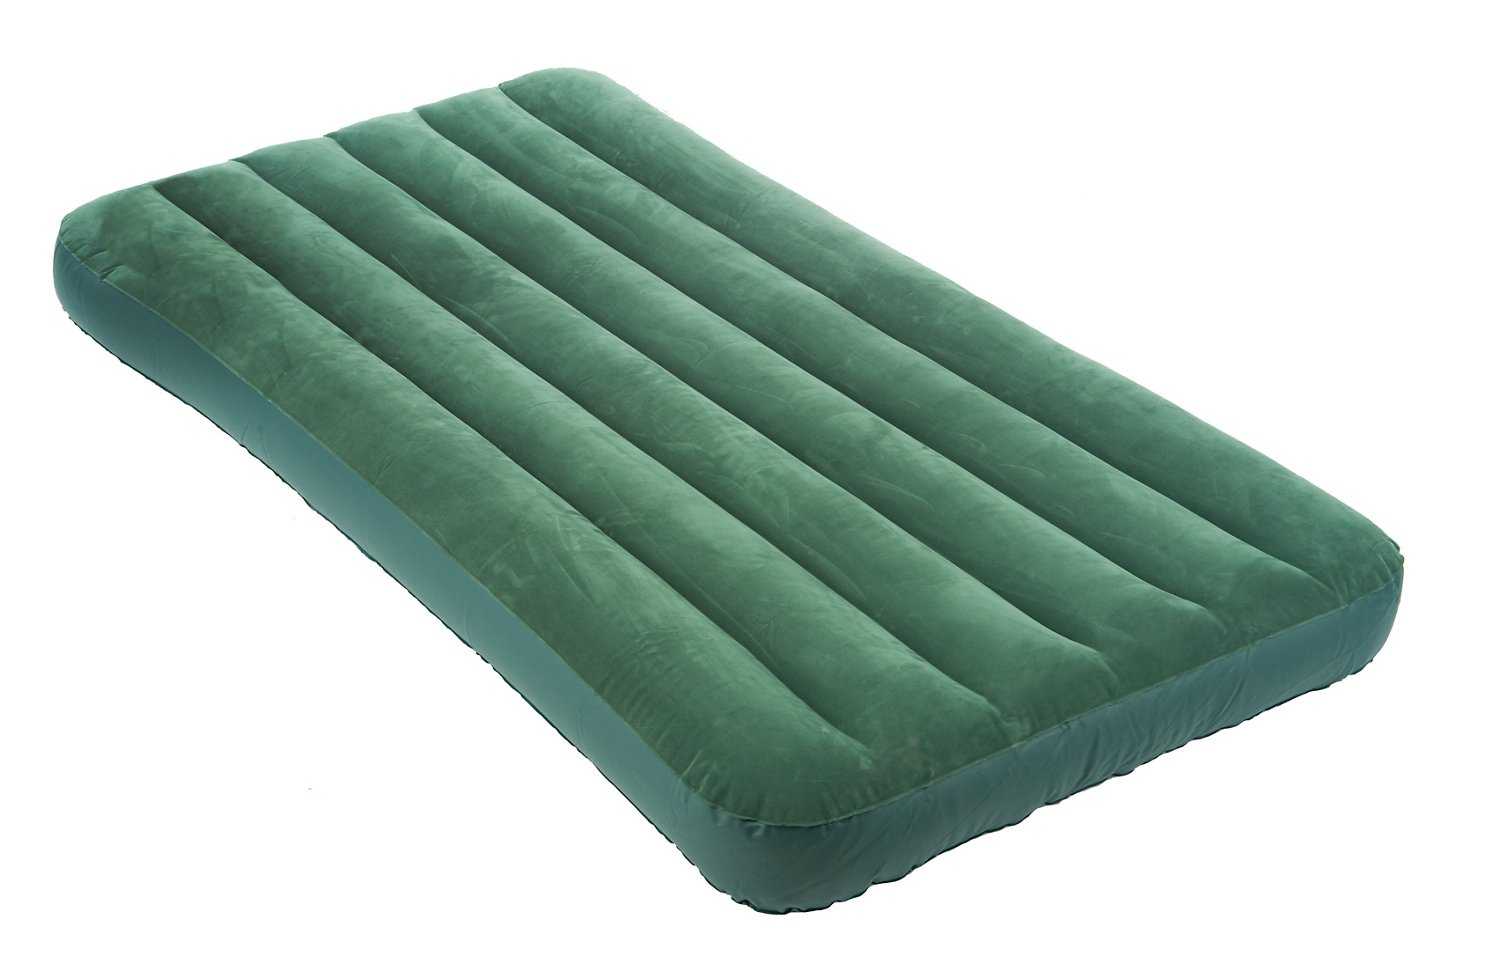 Intex Built In Pump Intex Downy Twin Size Airbed With Built In Foot Pump